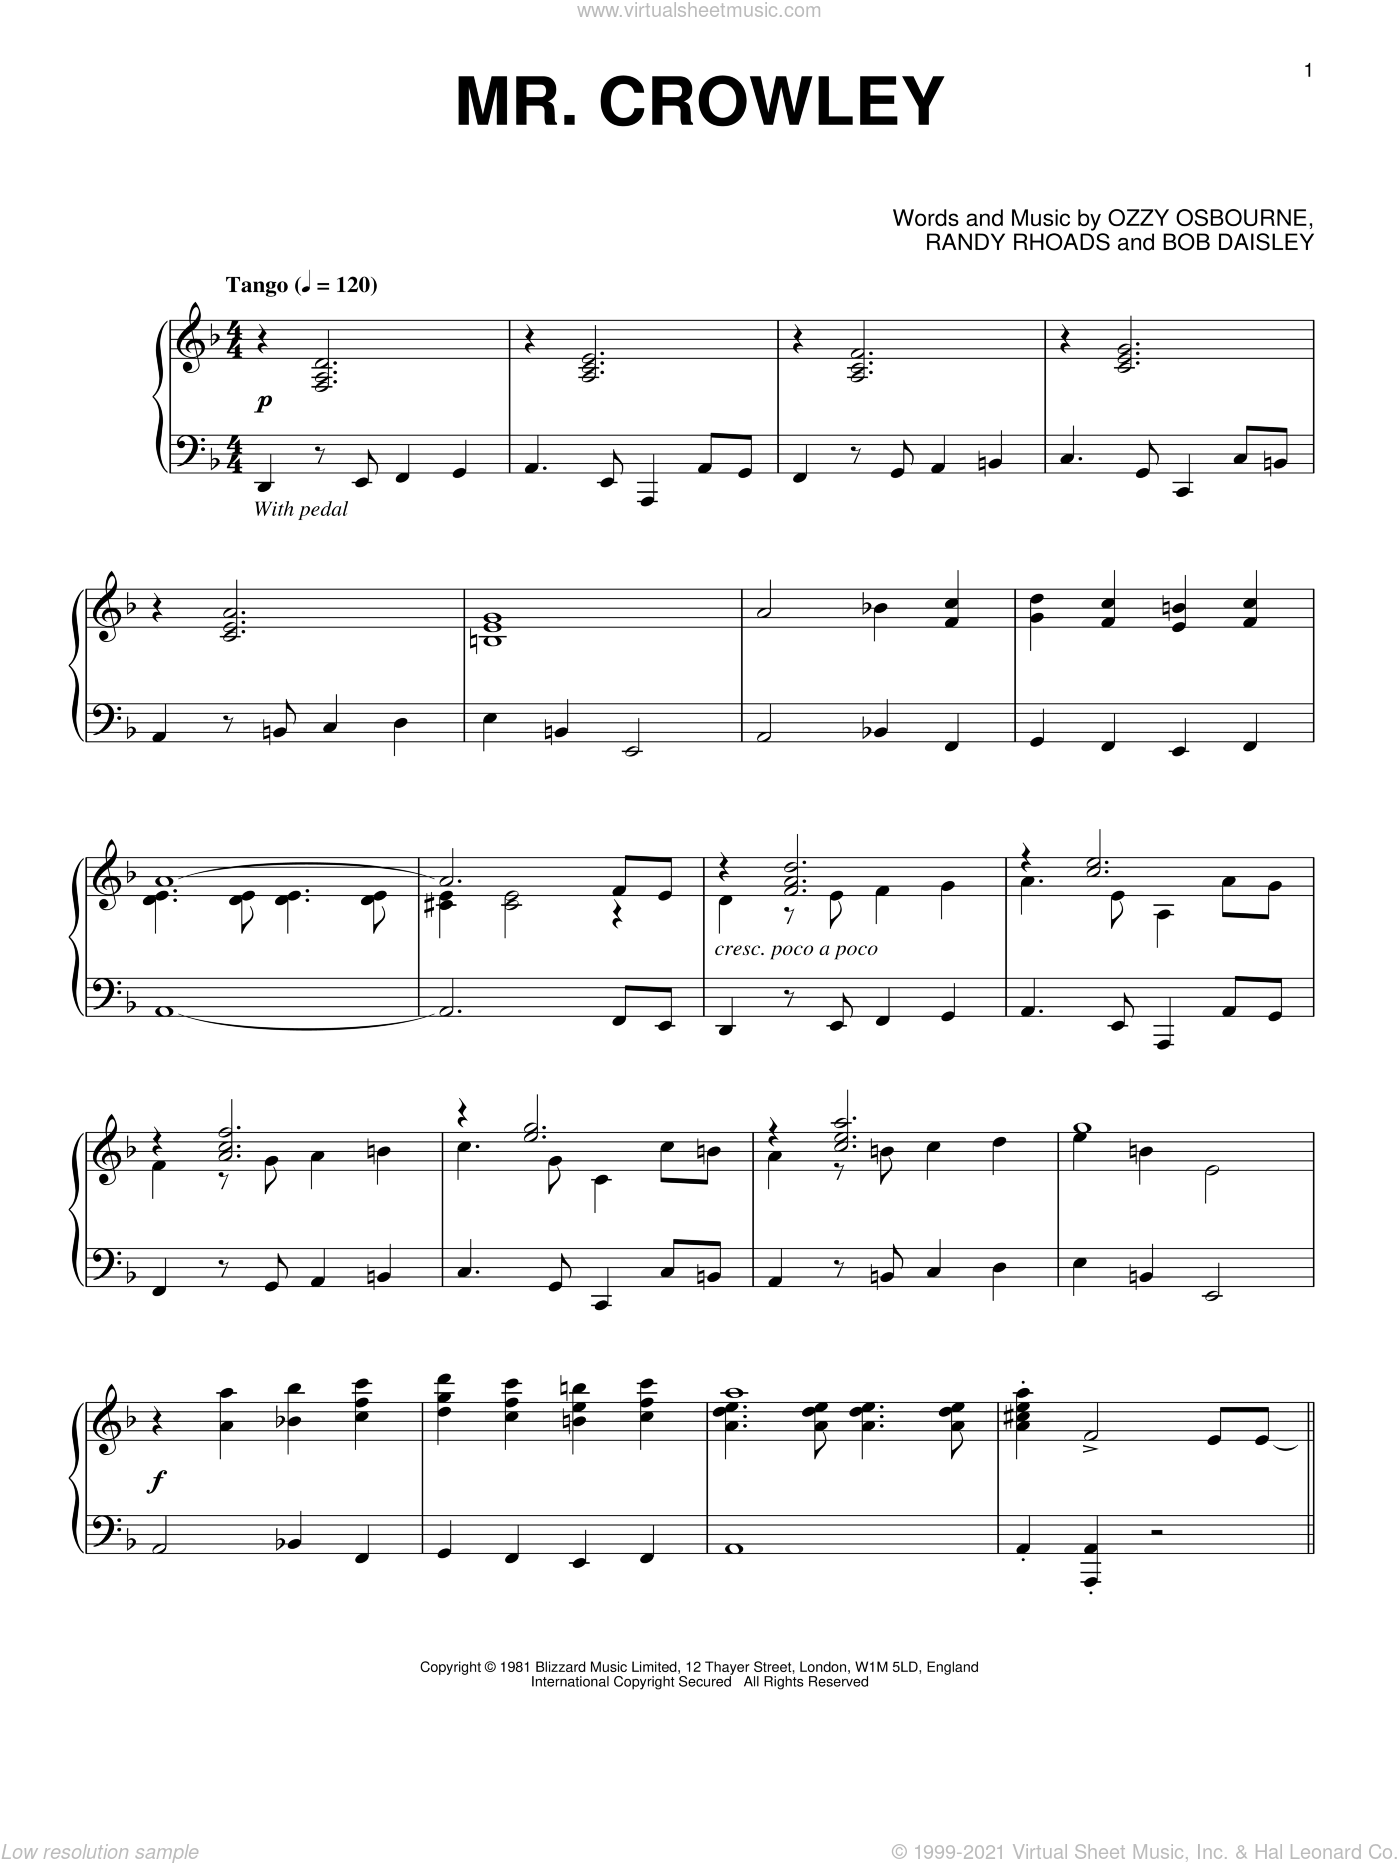 Mr. Crowley [Jazz version] sheet music for piano solo by Ozzy Osbourne, Bob Daisley and Randy Rhoads, intermediate skill level